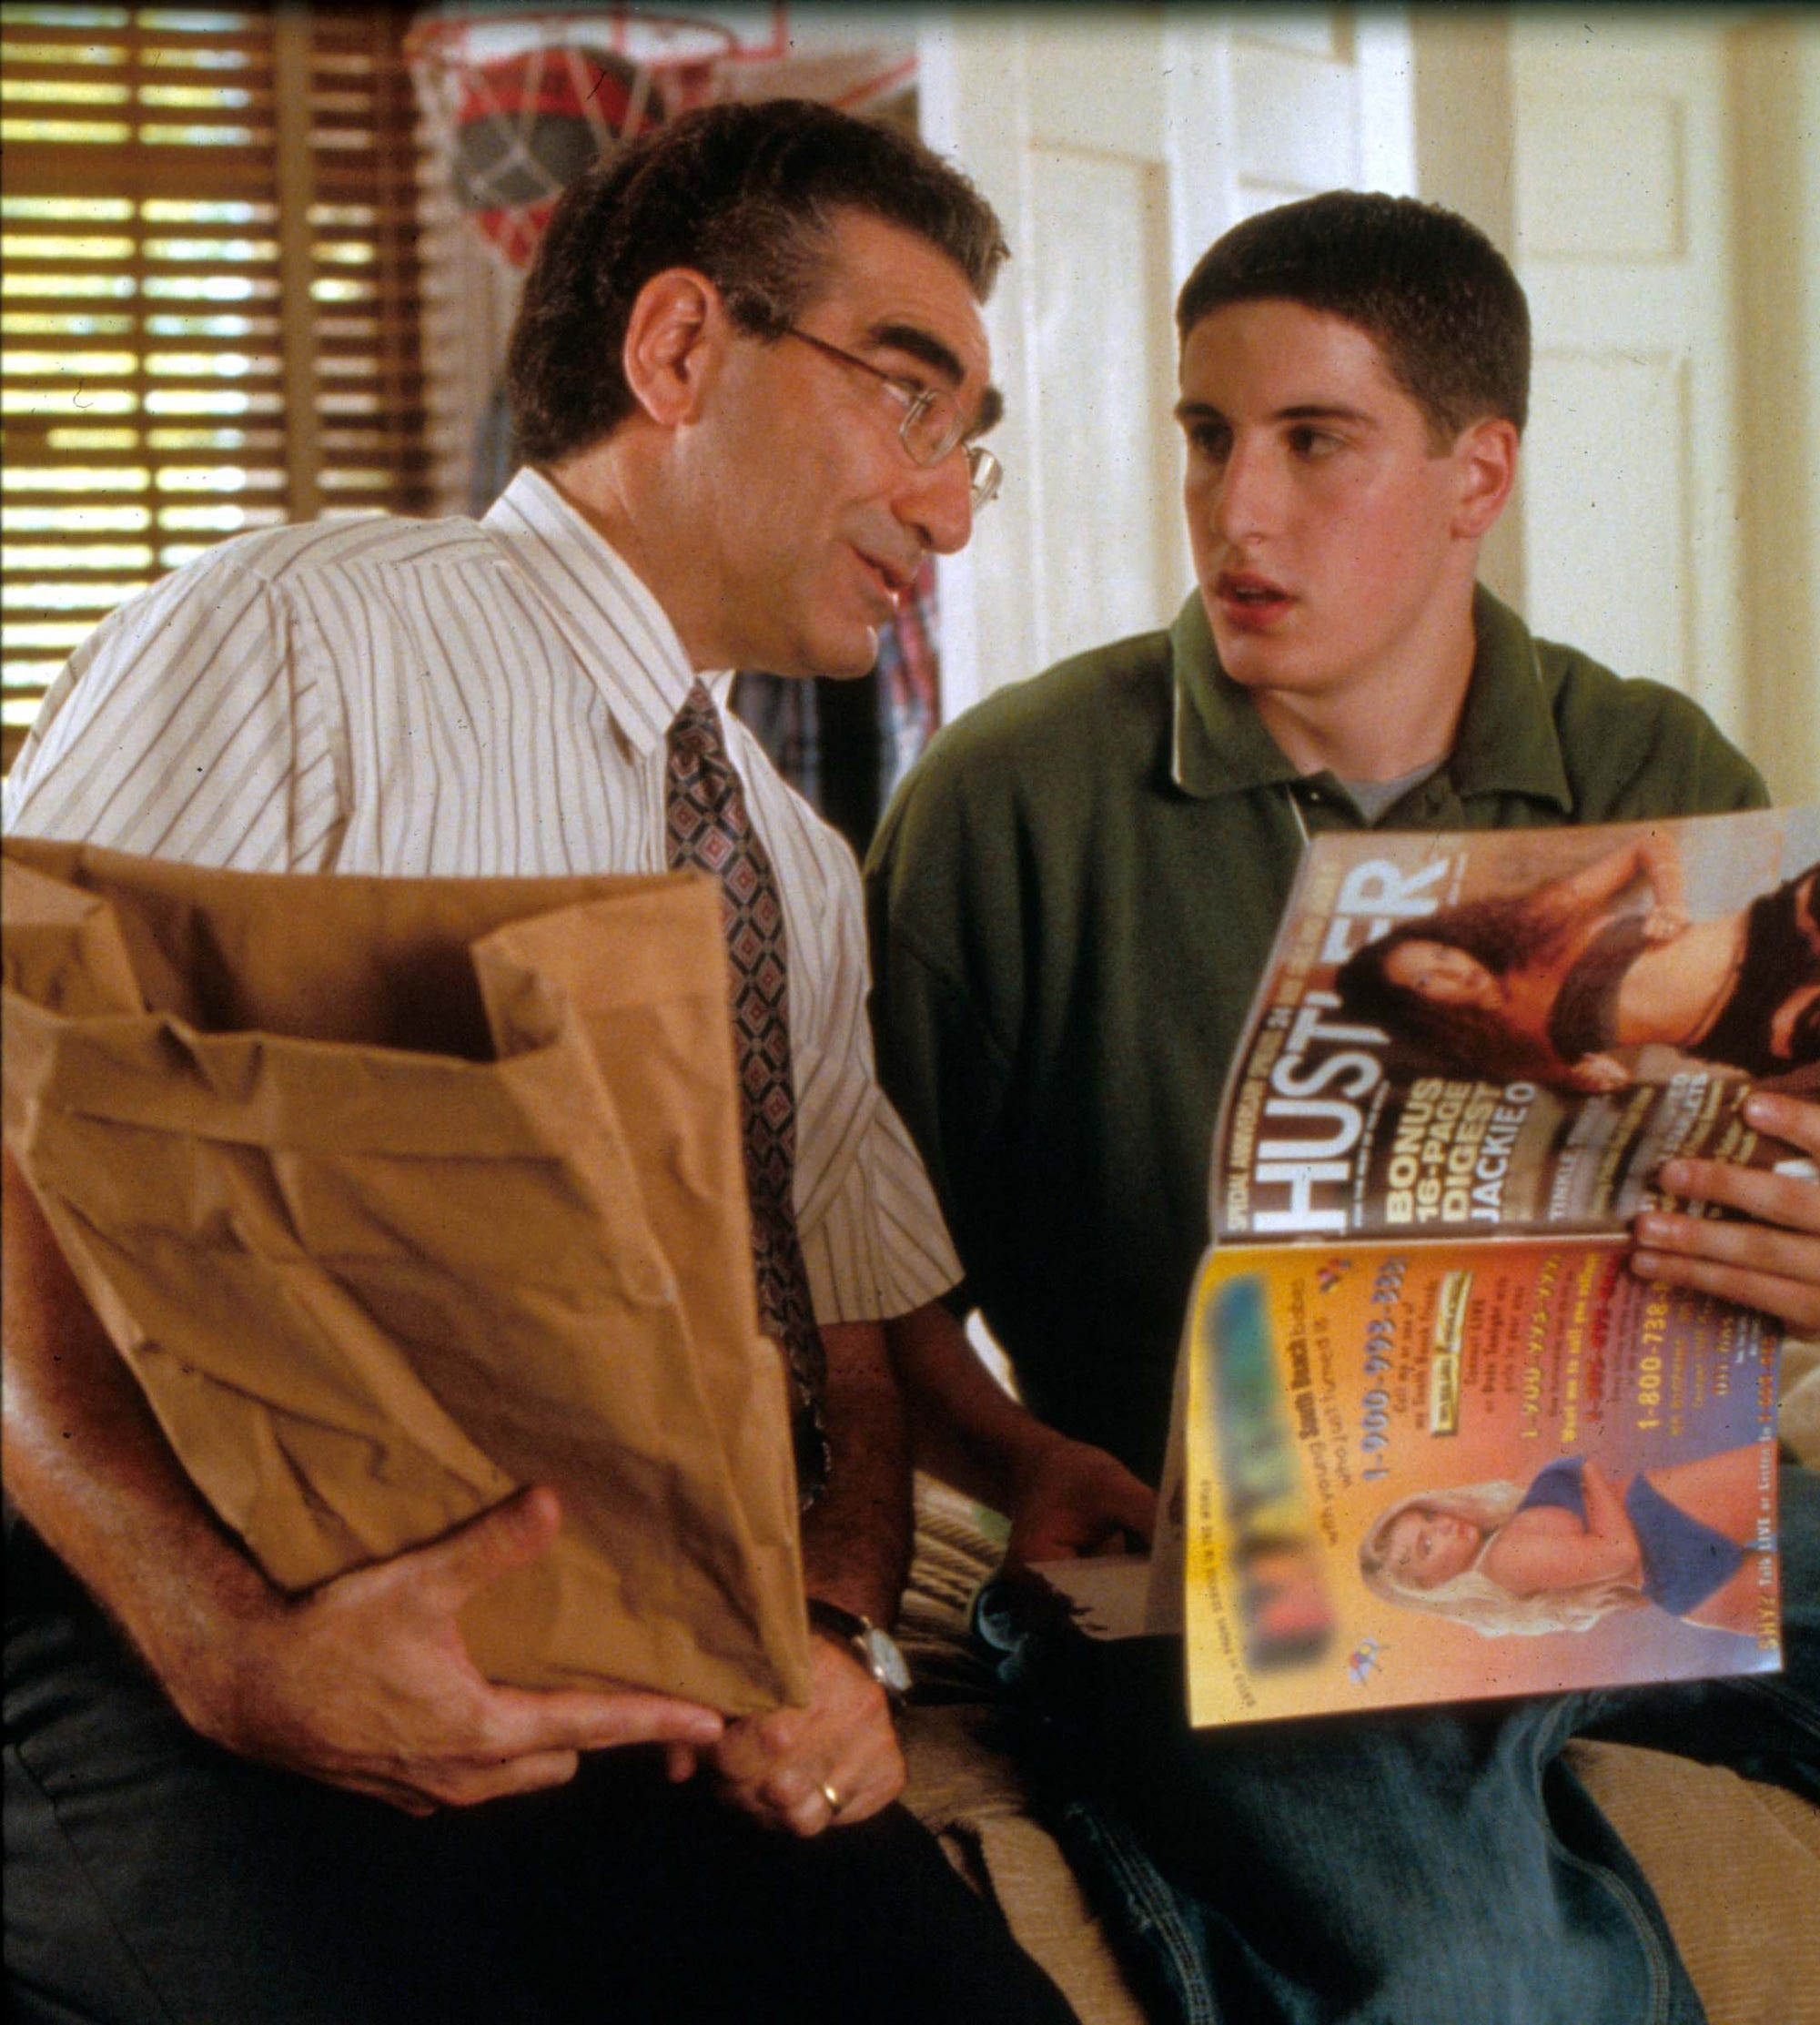 14 Year Old Boy Caught Wanking Porn rewatching american pie on its 20th anniversary